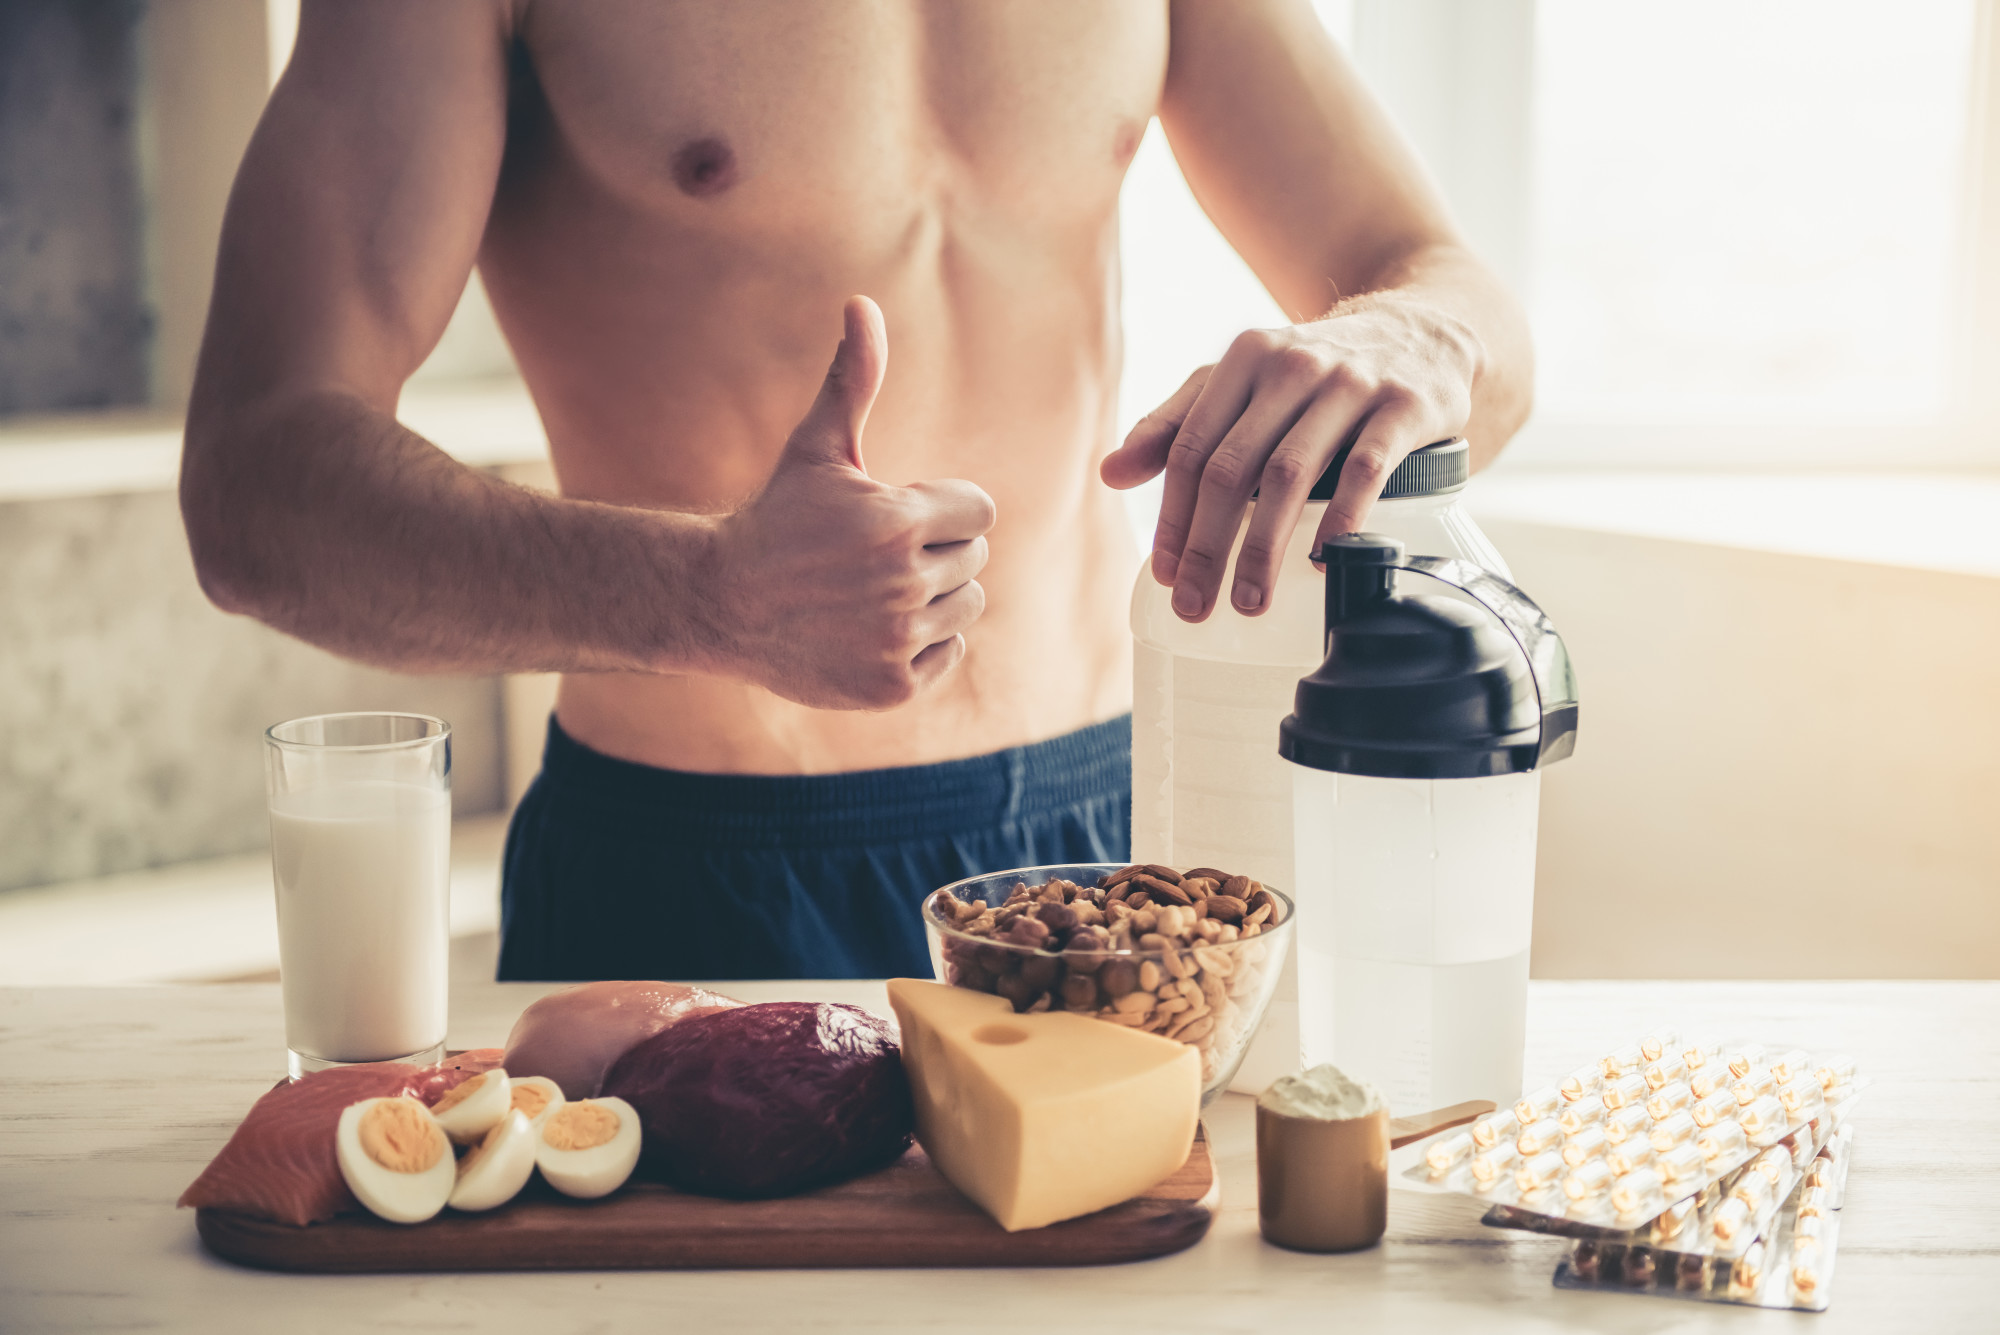 4 Helpful Diet Tips For Gaining Muscle